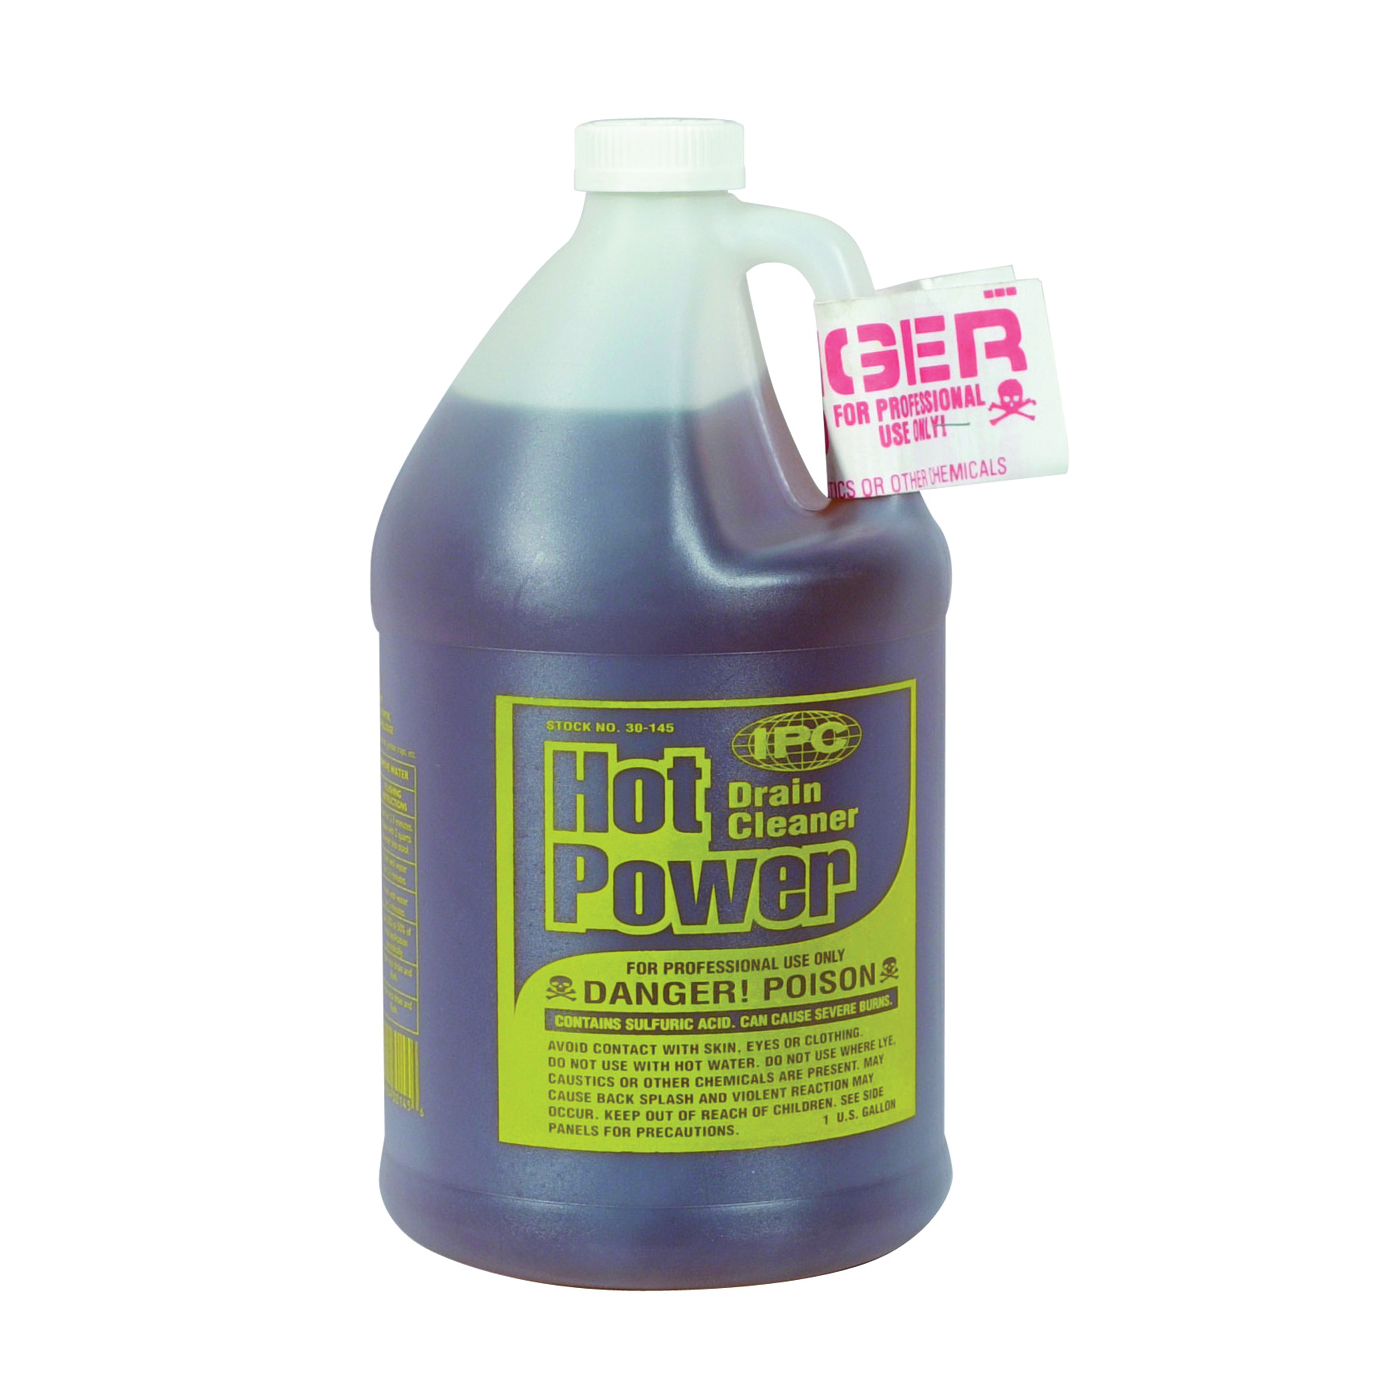 Picture of ComStar Hot Power 30-145 Drain Cleaner, Liquid, Amber, Sharp, 1 gal Package, Bottle